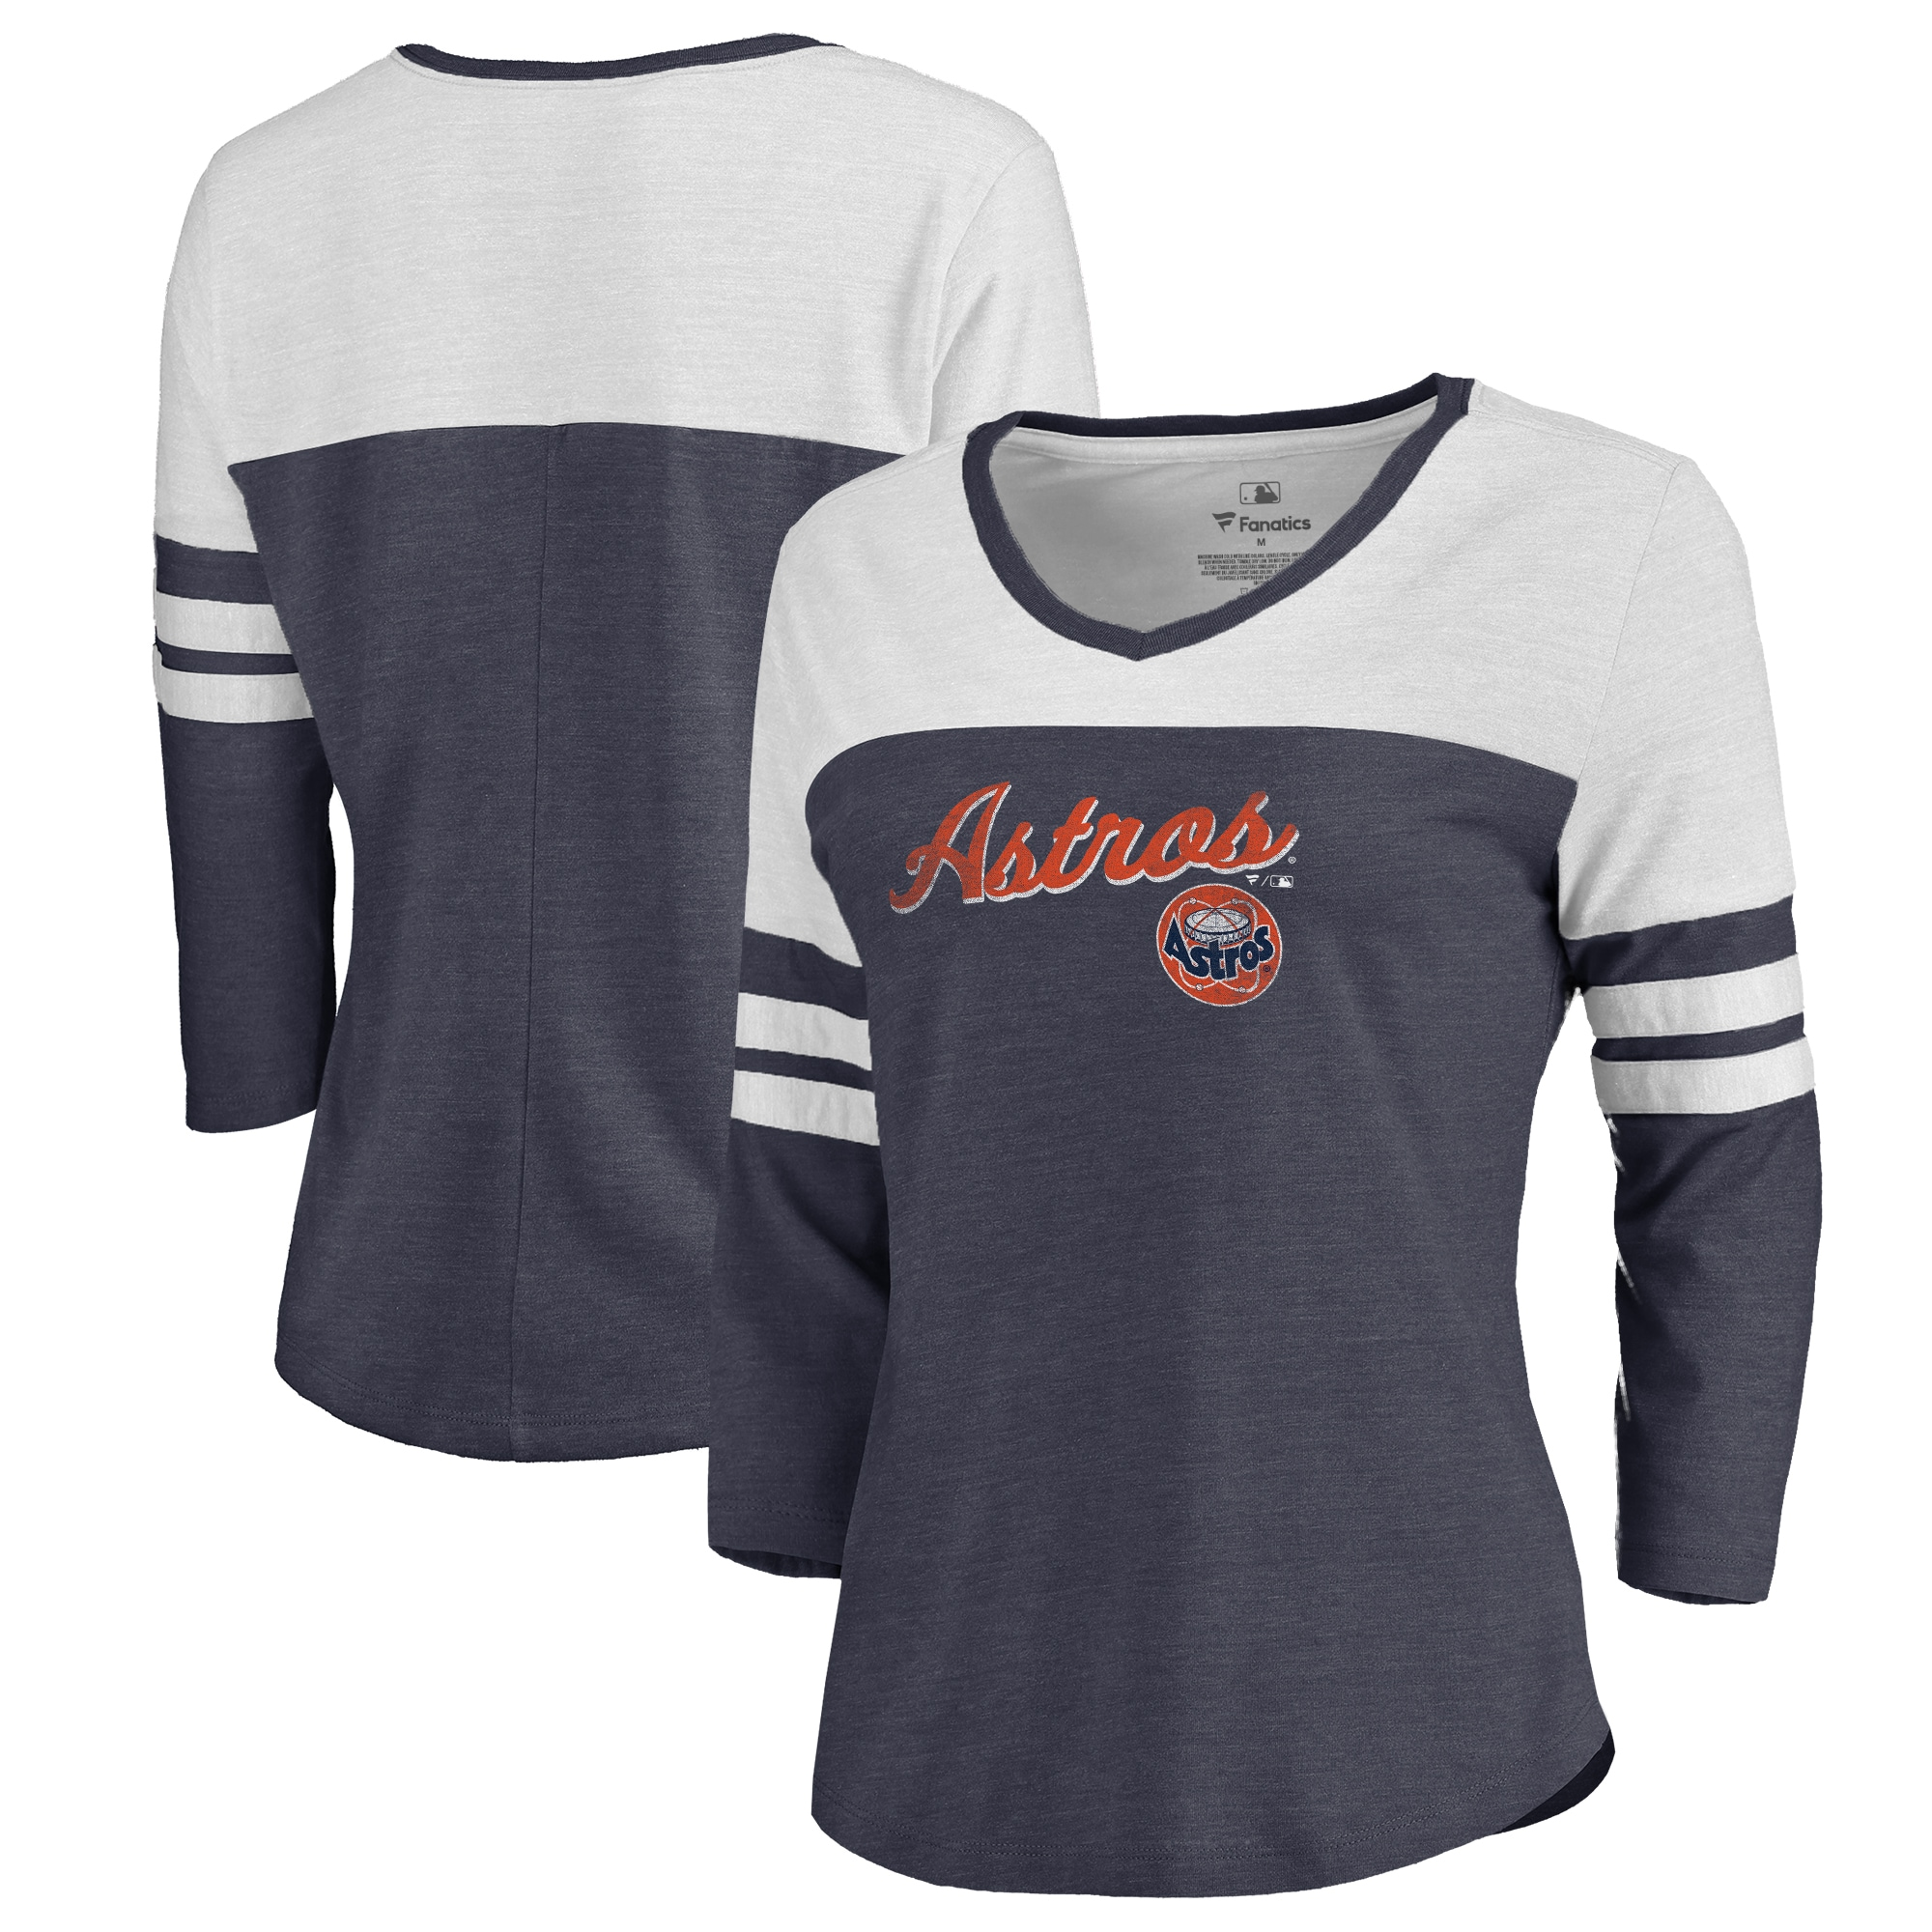 Fanatics Branded Houston Astros Women's Navy Rising Script Color Block 3/4 Sleeve Tri-Blend T-Shirt